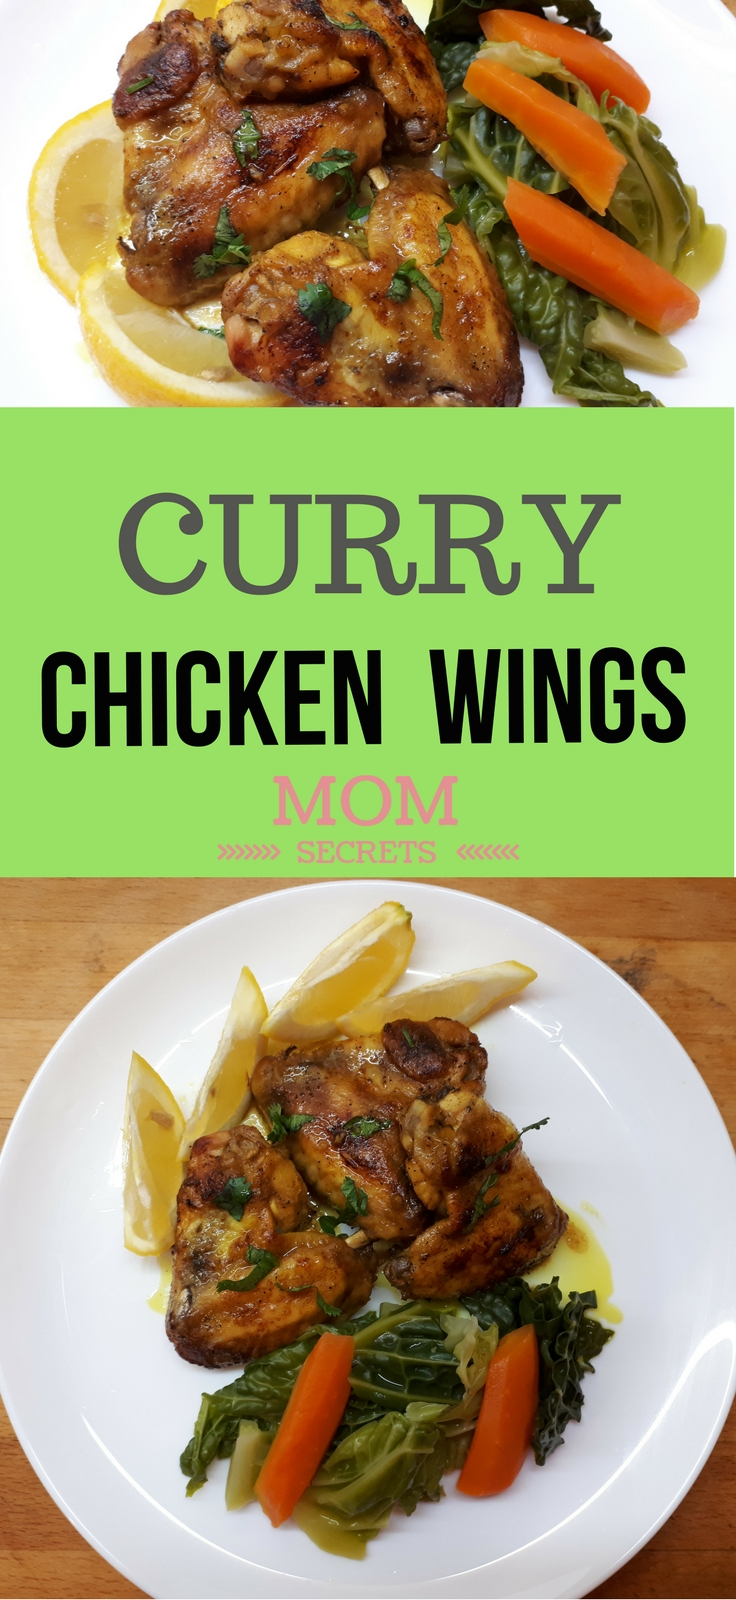 These oven-baked chicken wings are so delicious. This recipe brings us the Indian flavors through the curry taste. It can be a keto or paleo dish. This is a very tasty way to make wings.